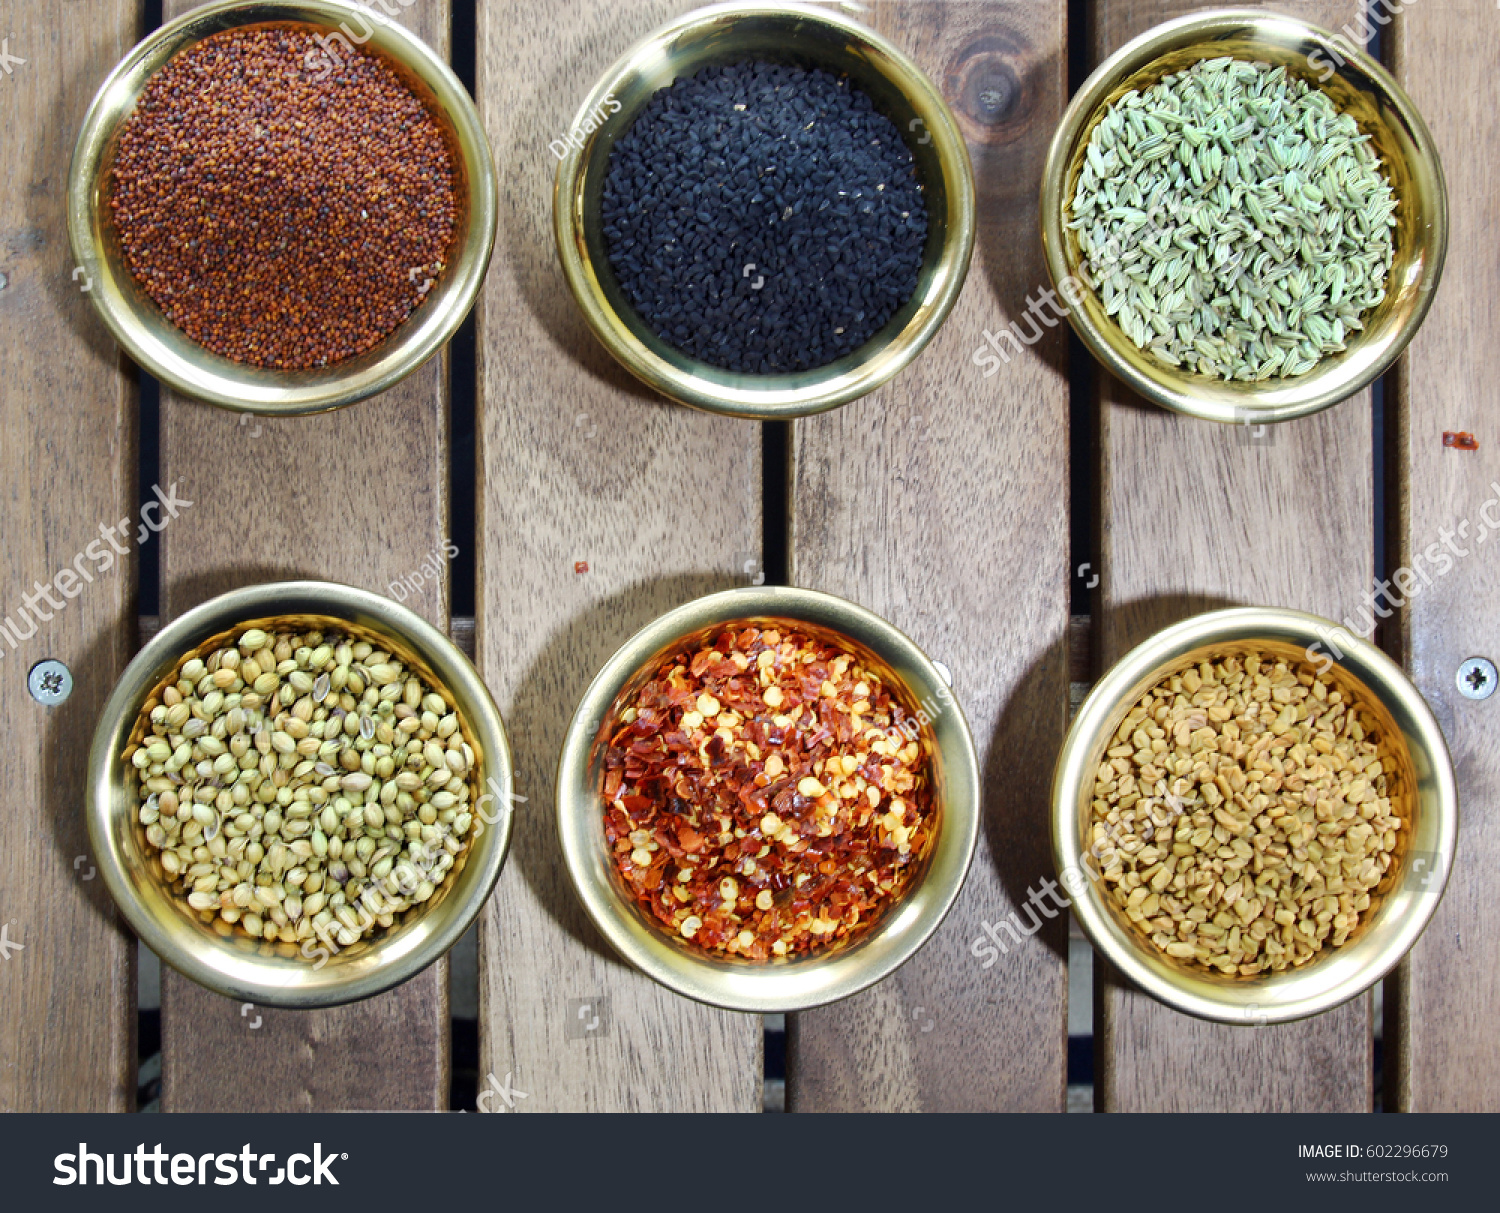 bowls spices containing mustard nigella fennel stock photo 602296679 shutterstock. Black Bedroom Furniture Sets. Home Design Ideas